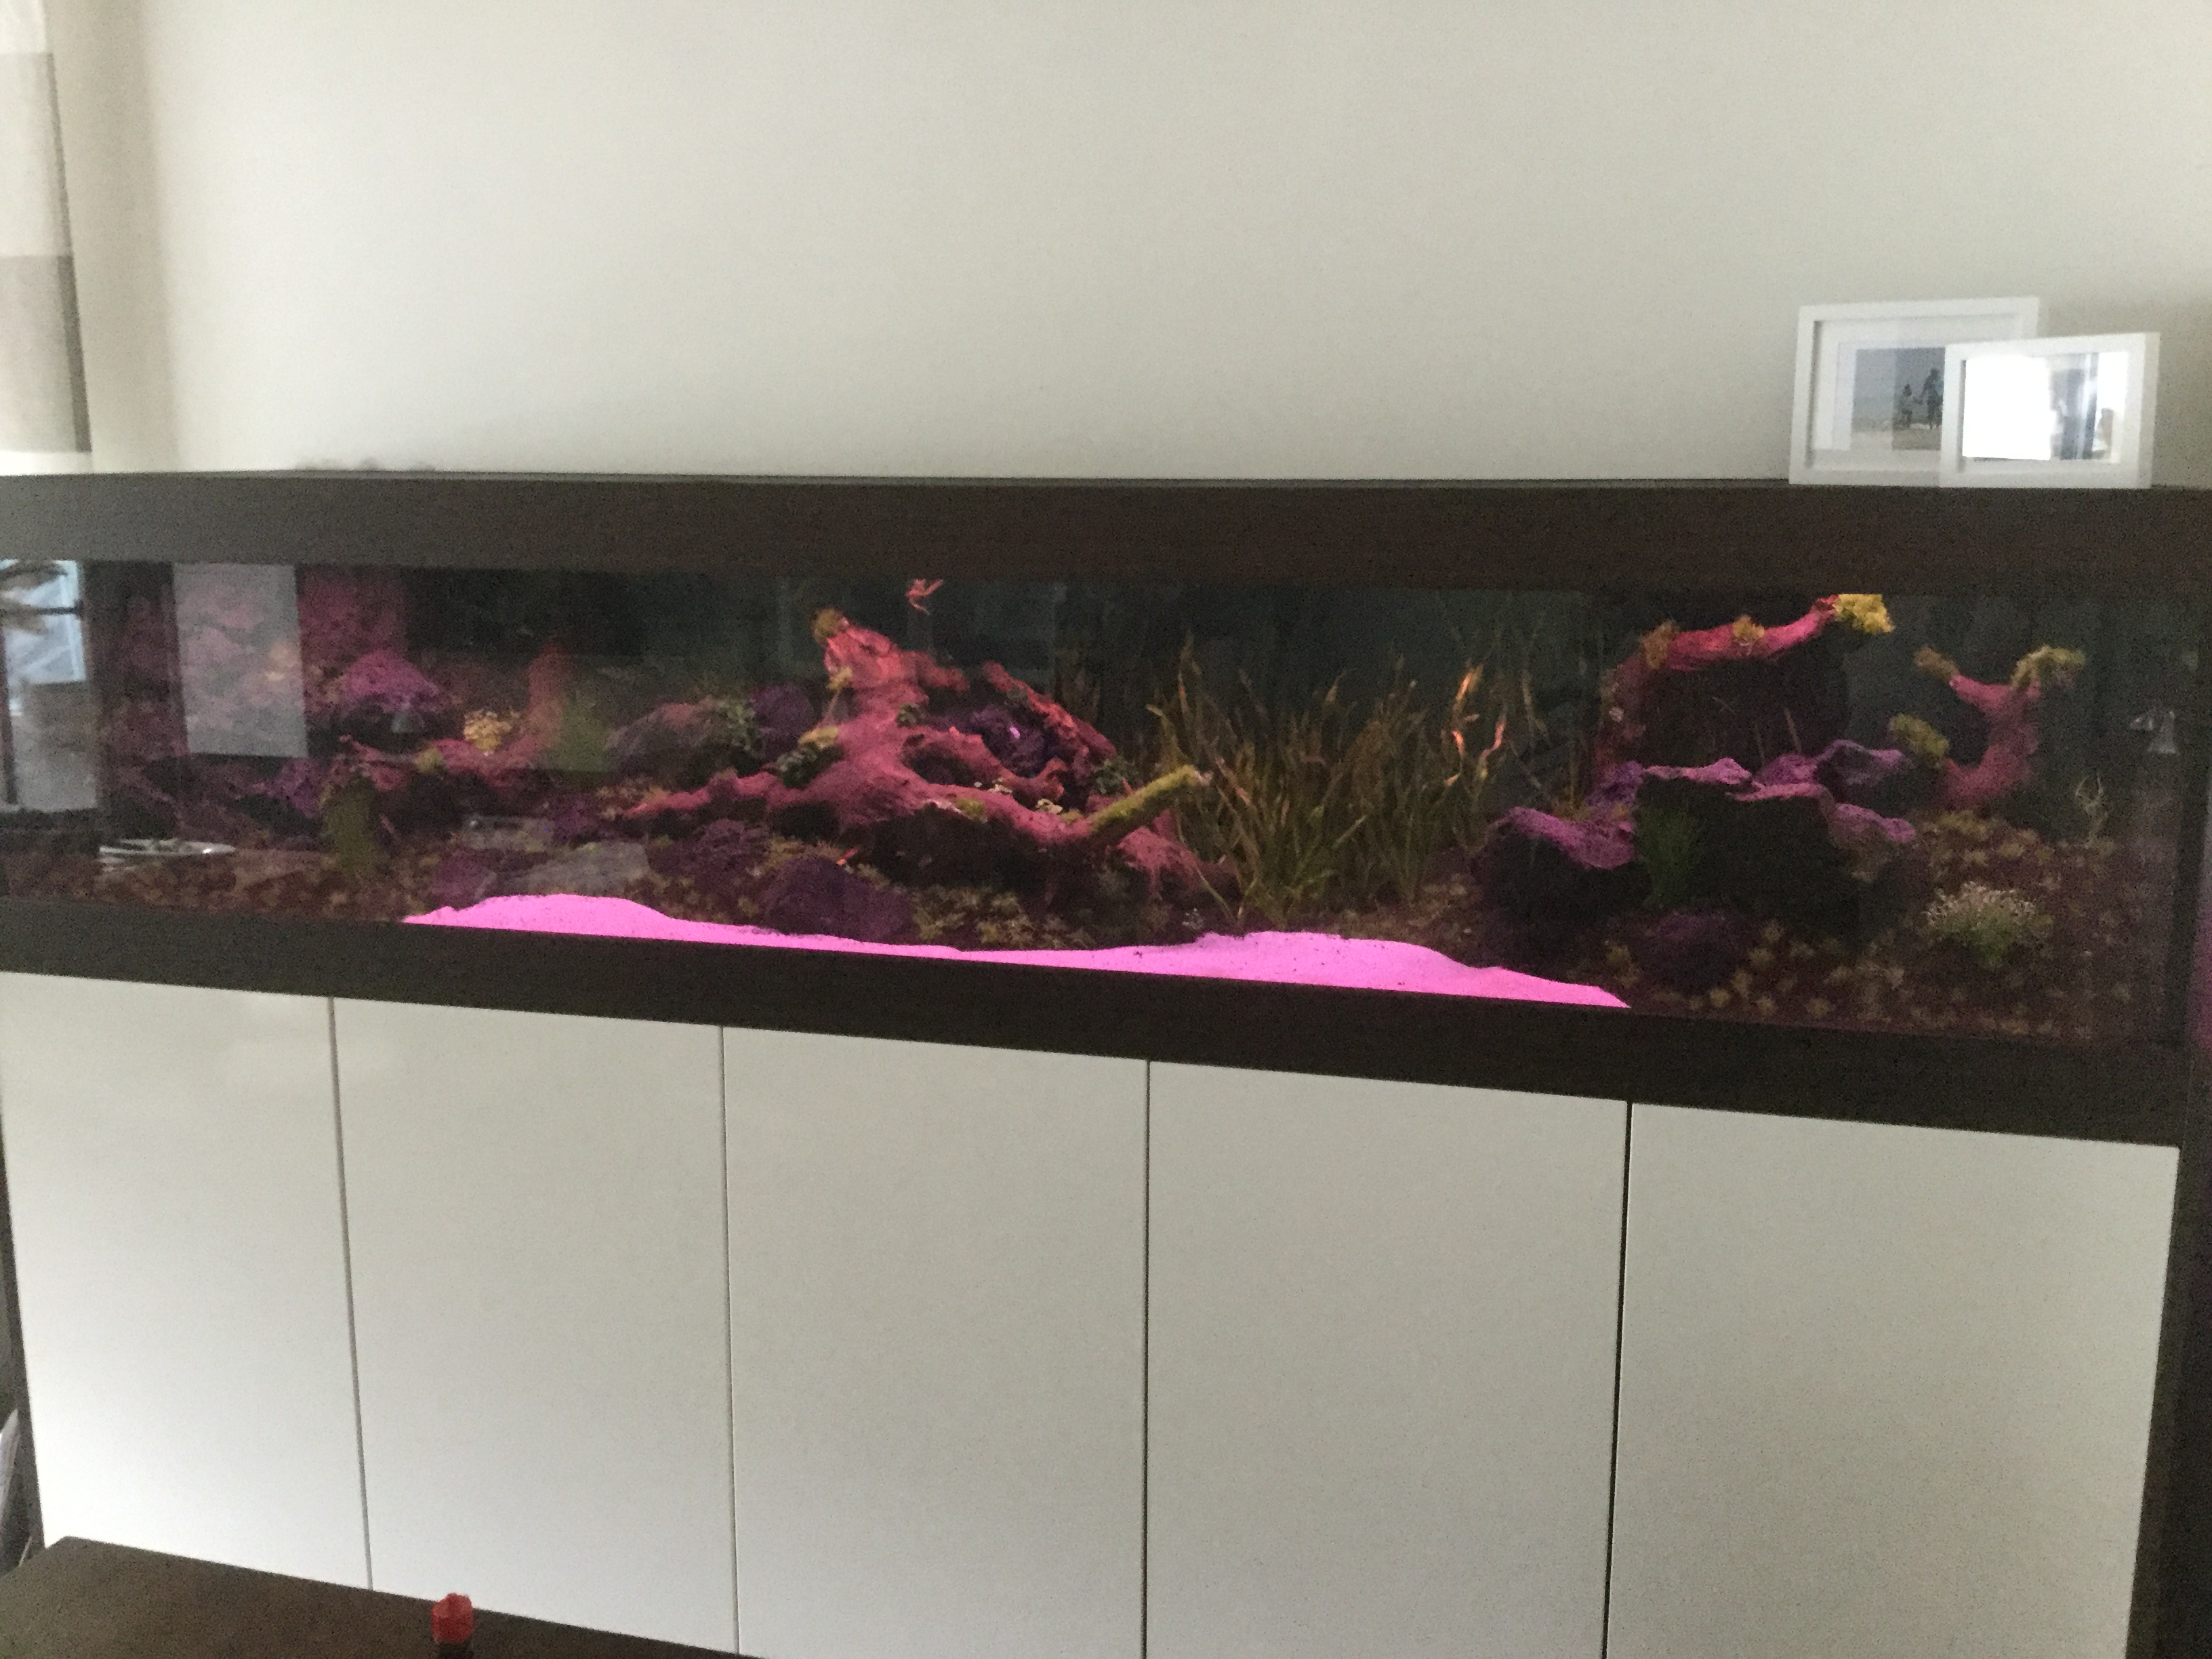 beleuchtungsdauer inkl sonnenaufgang aquariumbeleuchtung aquascaping forum. Black Bedroom Furniture Sets. Home Design Ideas